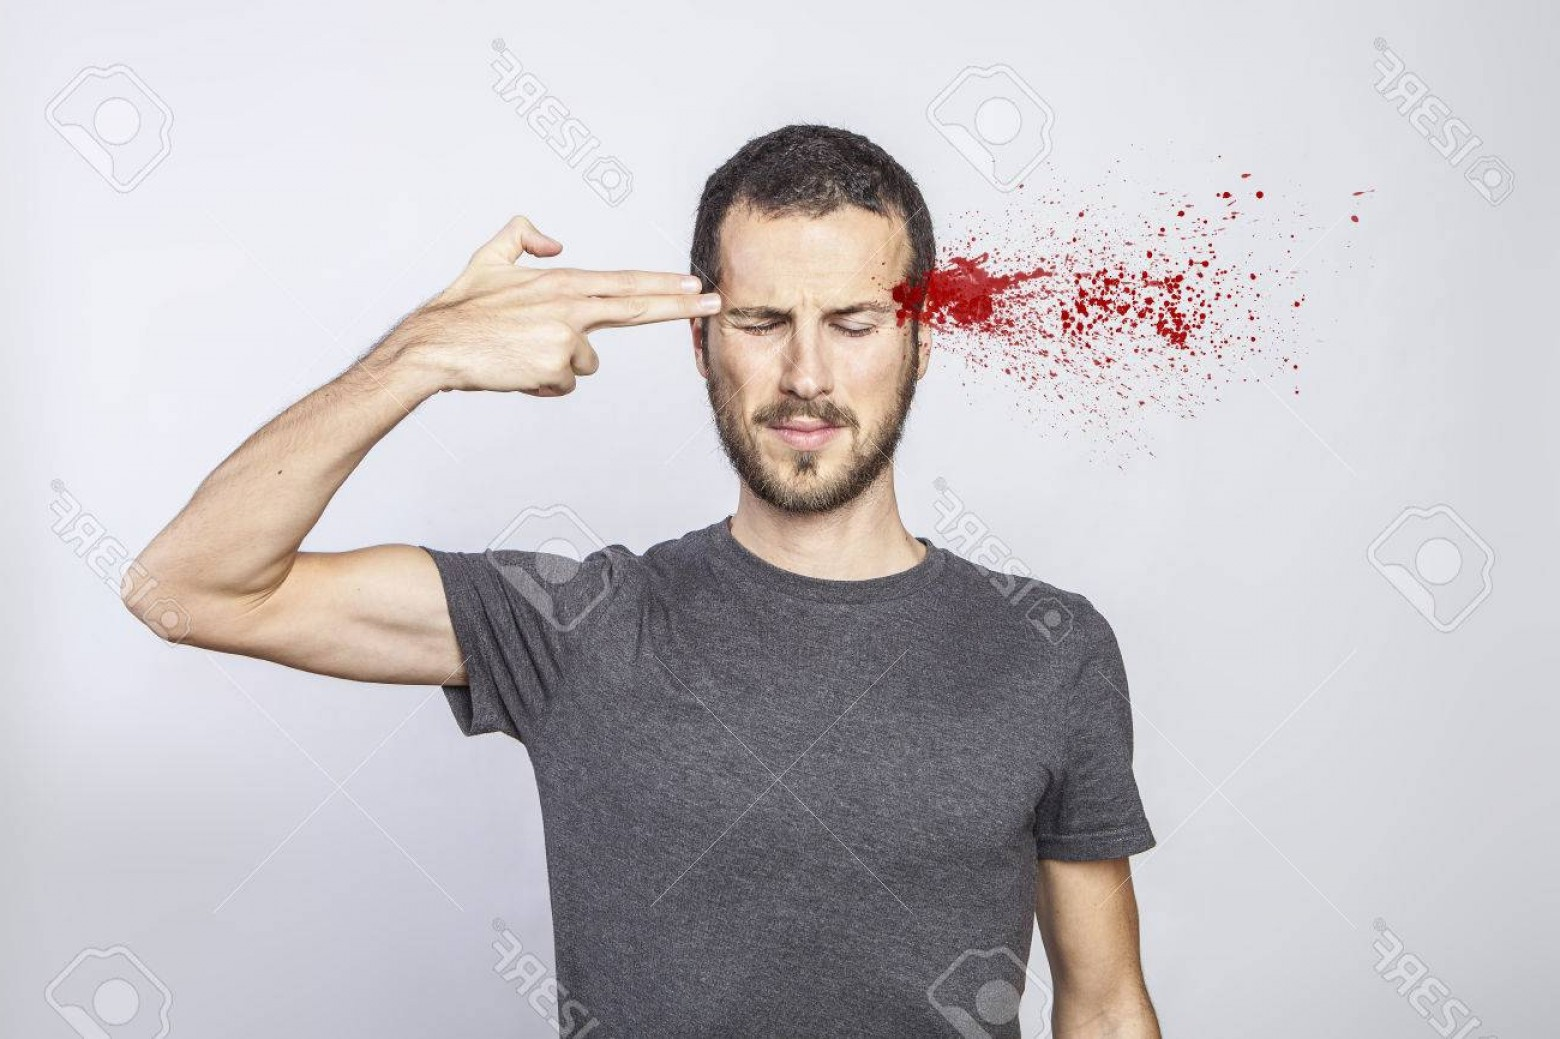 Finger Gun To Head Vector: Photoyoung Man Committing Suicide With Finger Gun Gesture